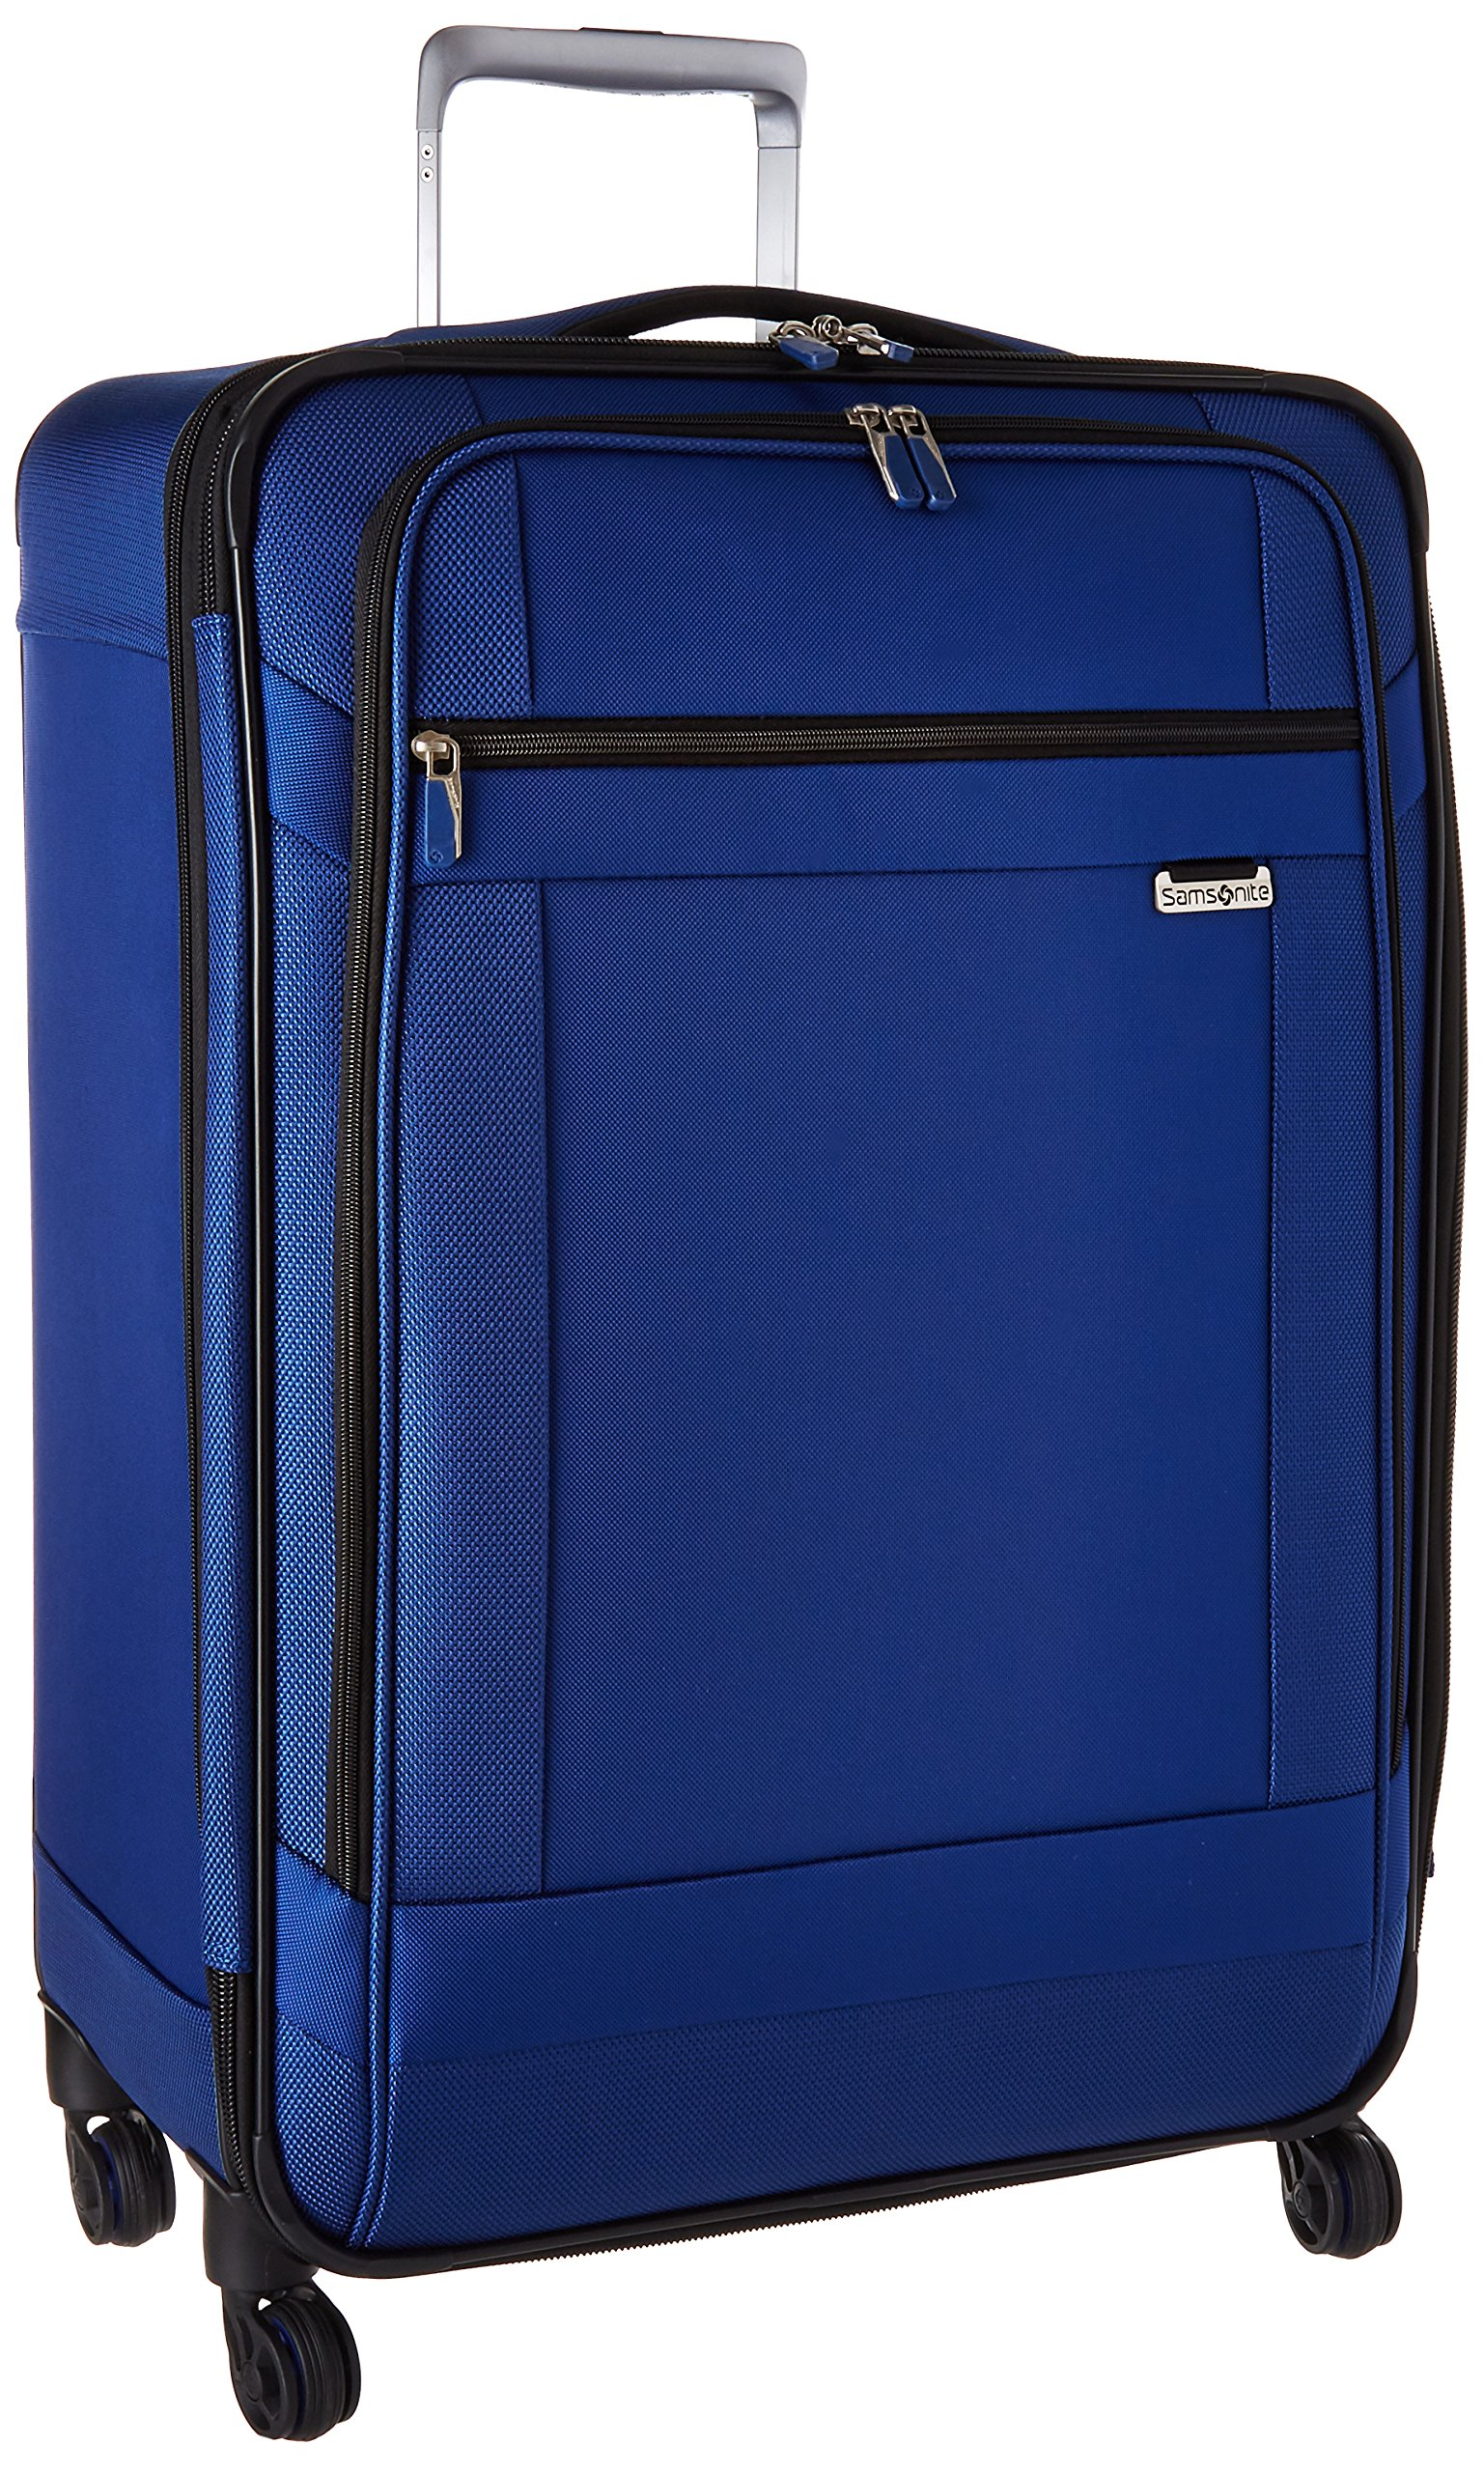 Solyte Softside Expandable Luggage with Spinner Wheels, True Blue, Checked-Medium 25-Inch